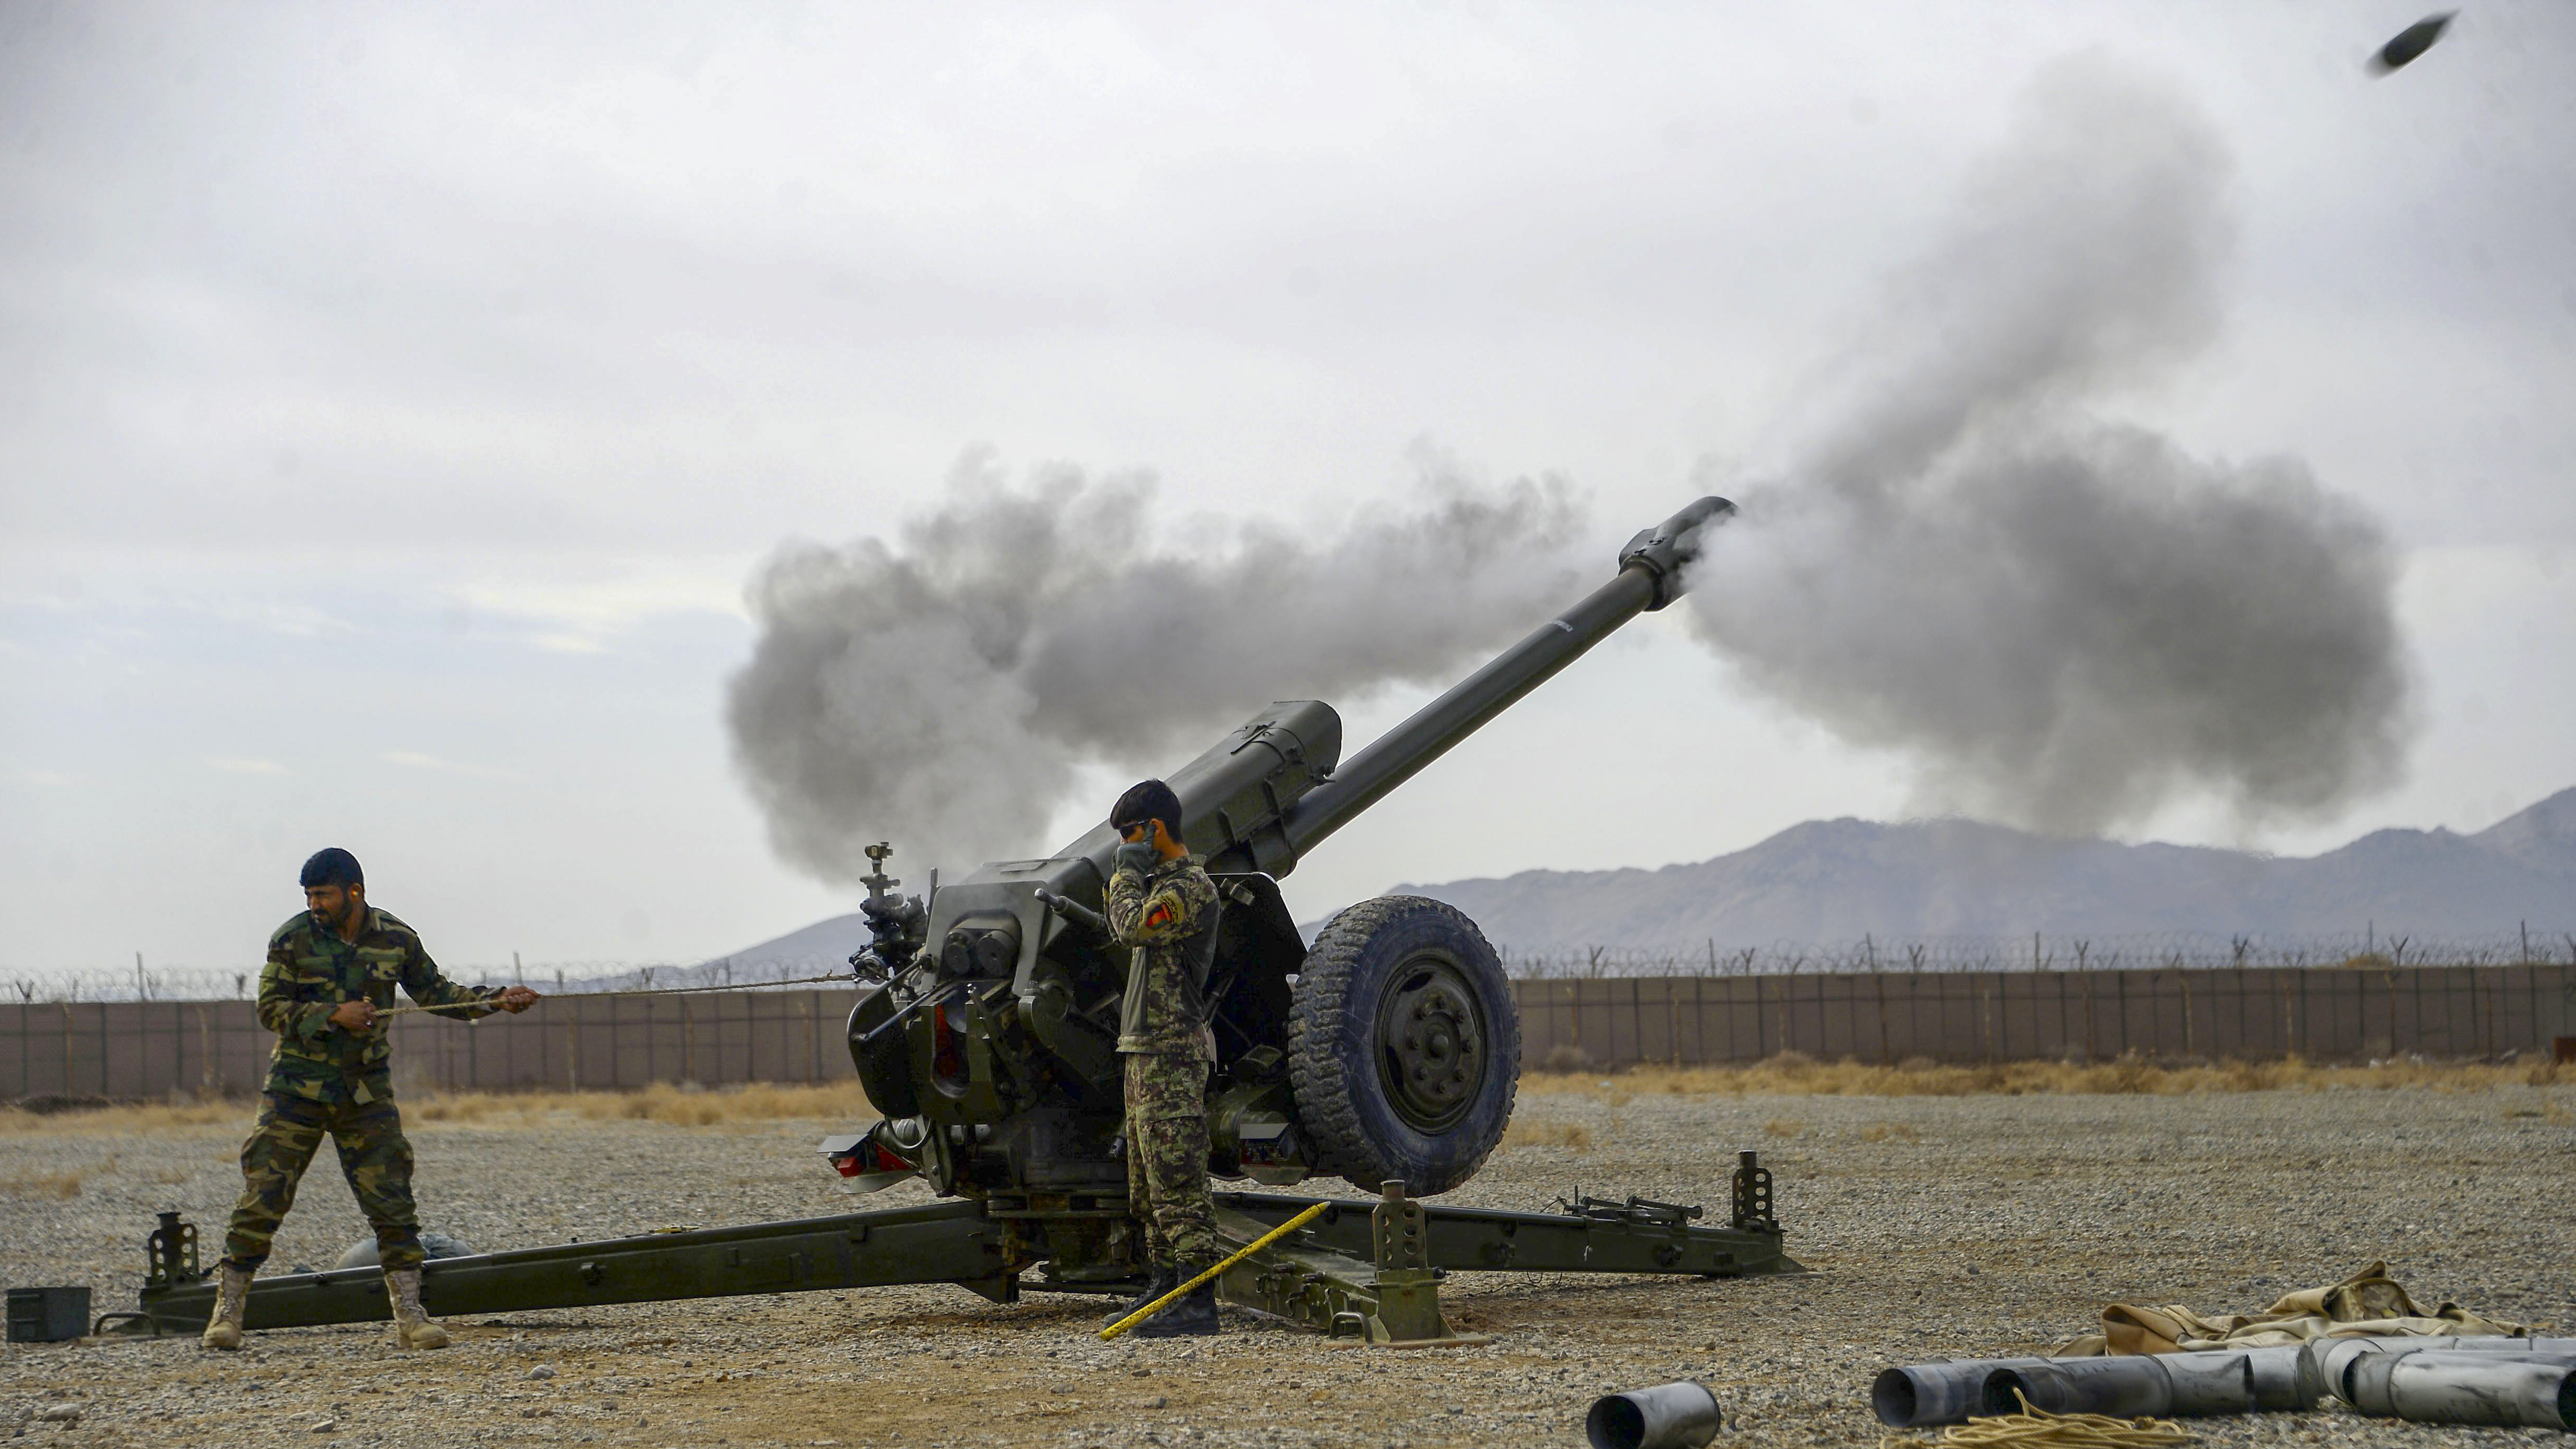 Afghan National Army (ANA) soldiers fire a D30 122mm Howitzer gun during a training session on Feb. 2, 2019, for ANA soldiers at Arena base in the Guzara district of Herat province. (HOSHANG HASHIMI/AFP/Getty Images)